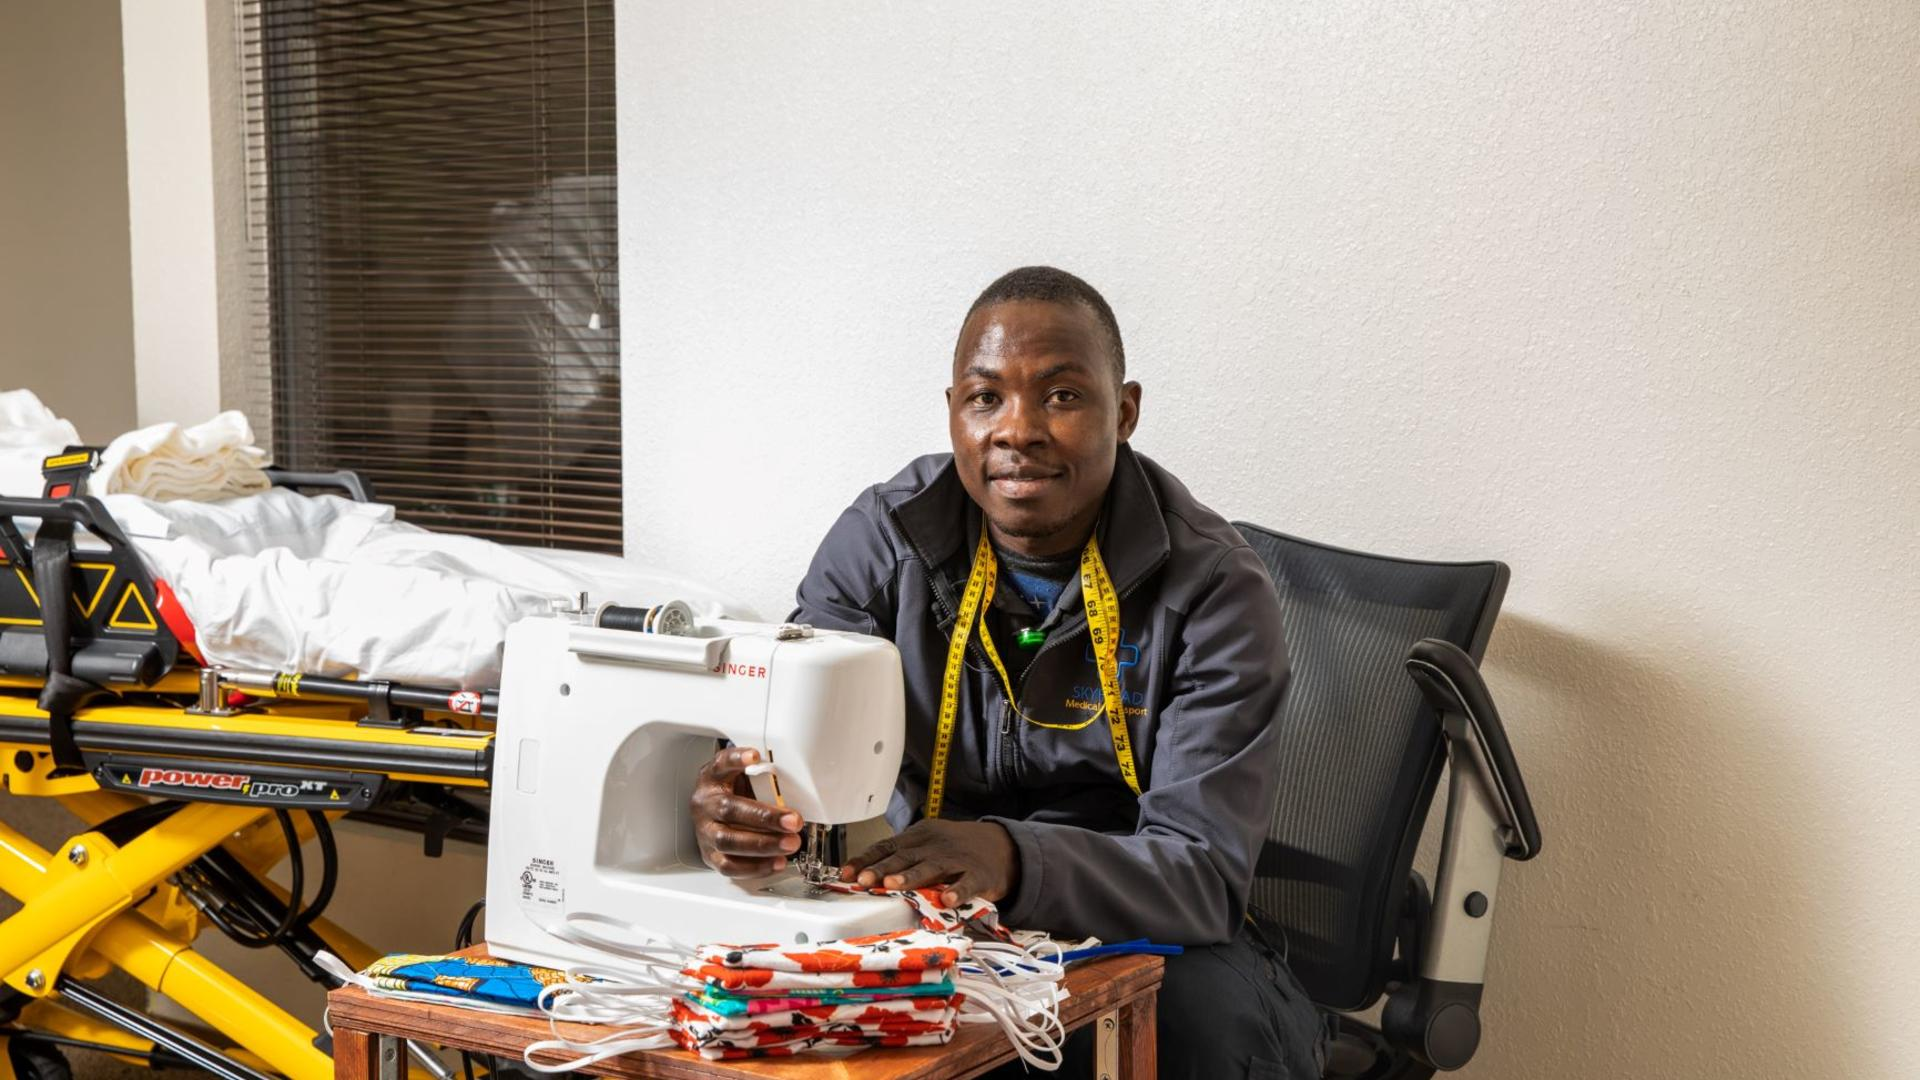 Jonathan Amissa sits at a desk with a sewing machine he uses to make masks for his staff and community. He is wearing yellow tape measure around his neck and is looking at the camera and smiling. There is a stack of red masks on the table.